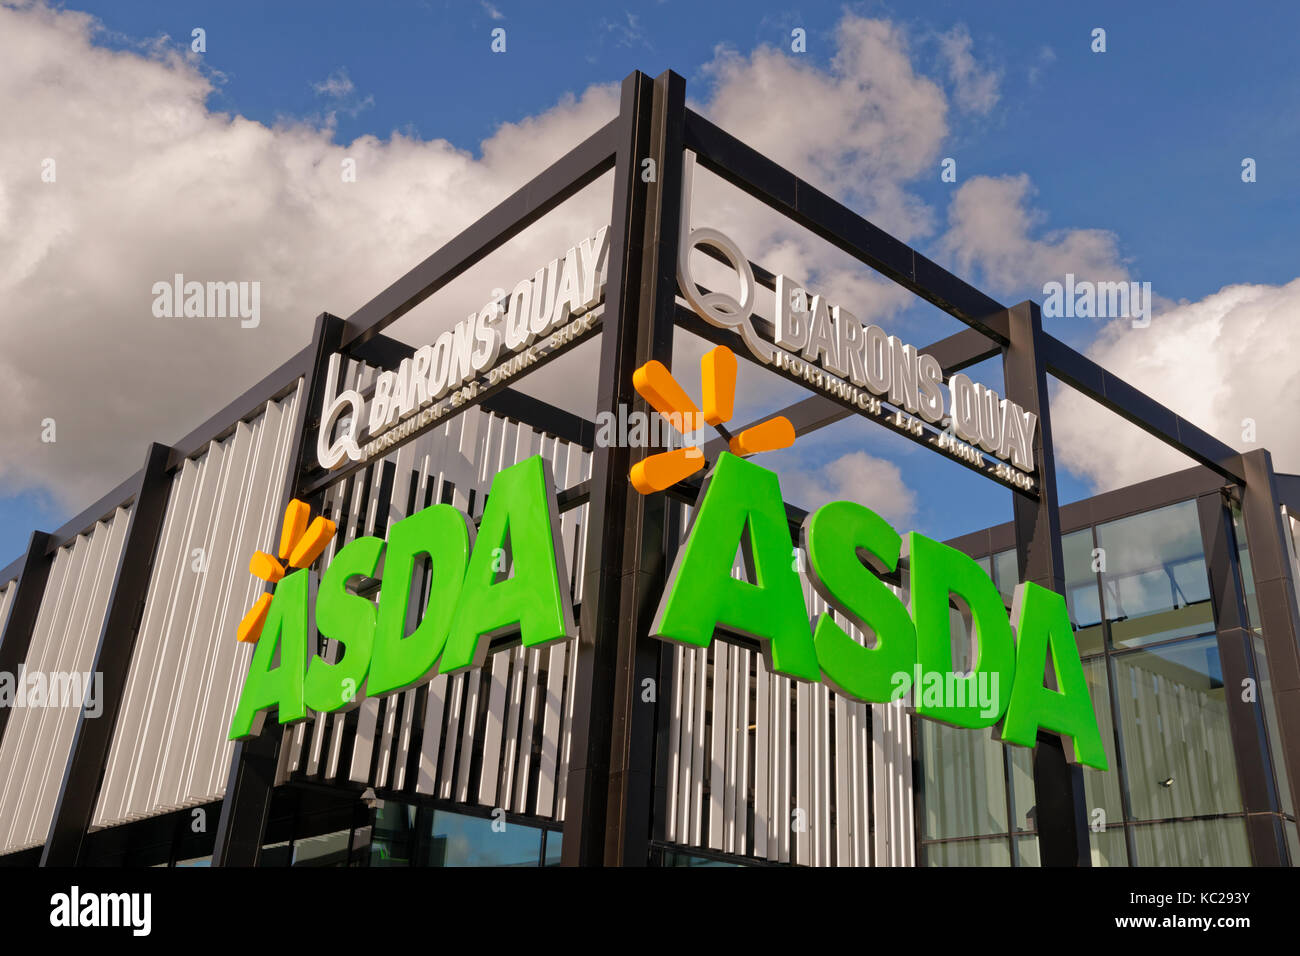 Signage at the new Asda store at Barons Quay in Northwich, Cheshire, England, UK. - Stock Image